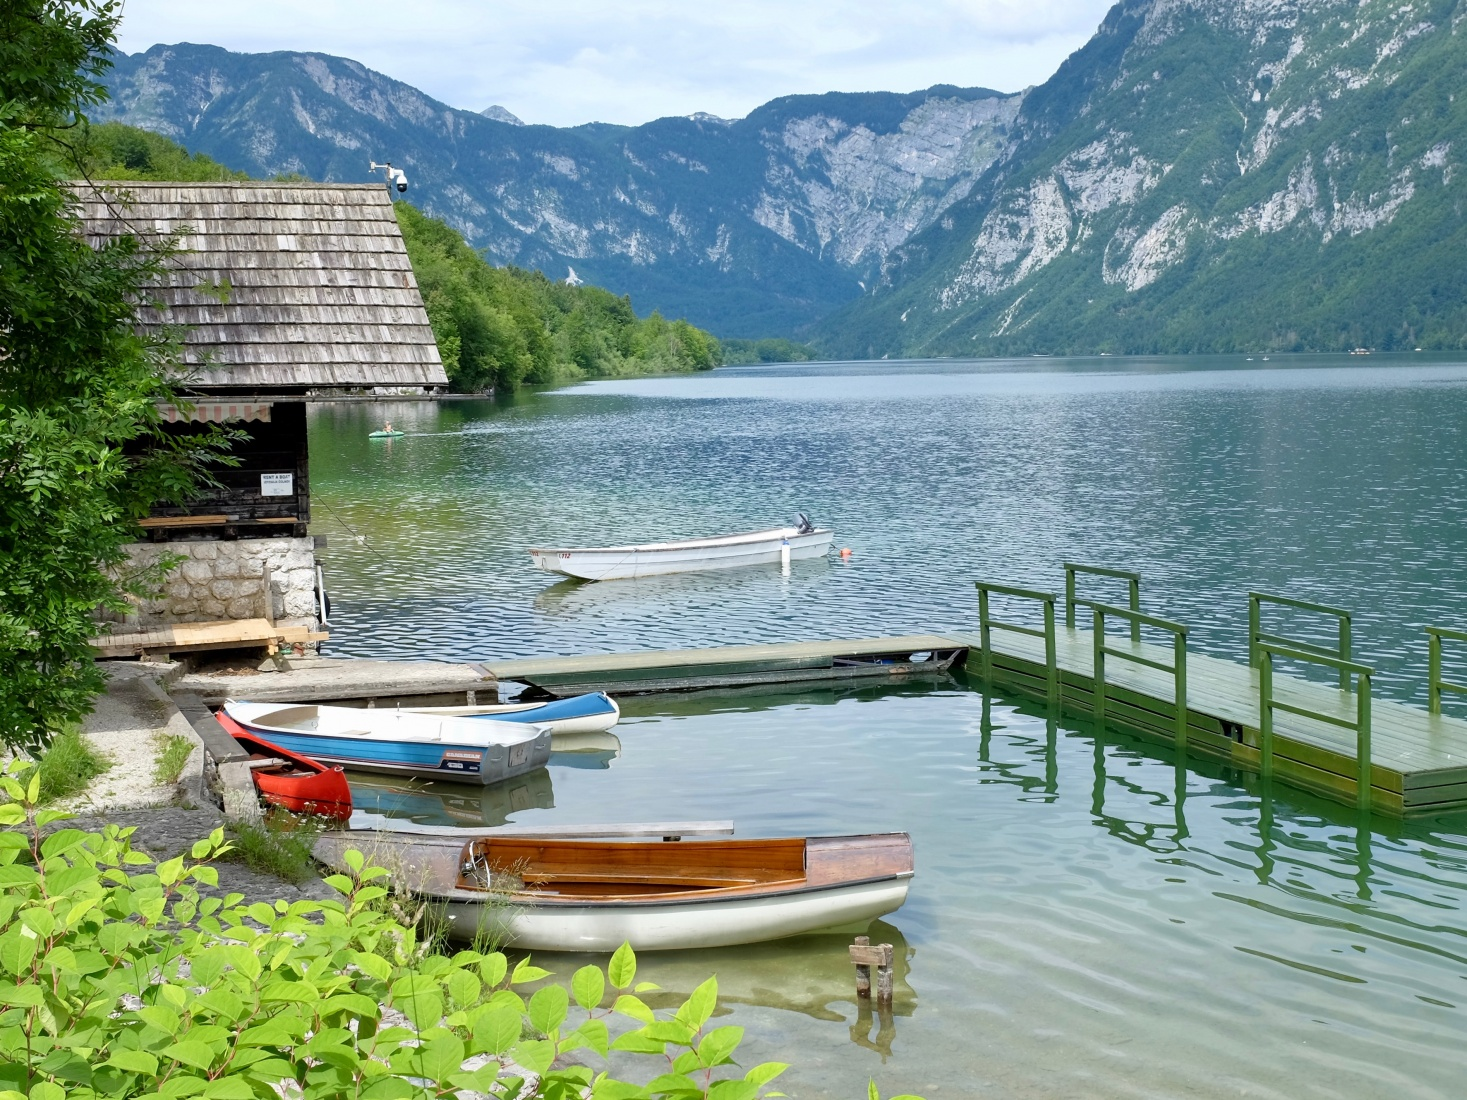 Boats, a dock, and a boathouse on Slovenia's Lake Bohinj, with clear water and beautiful distant mountains.